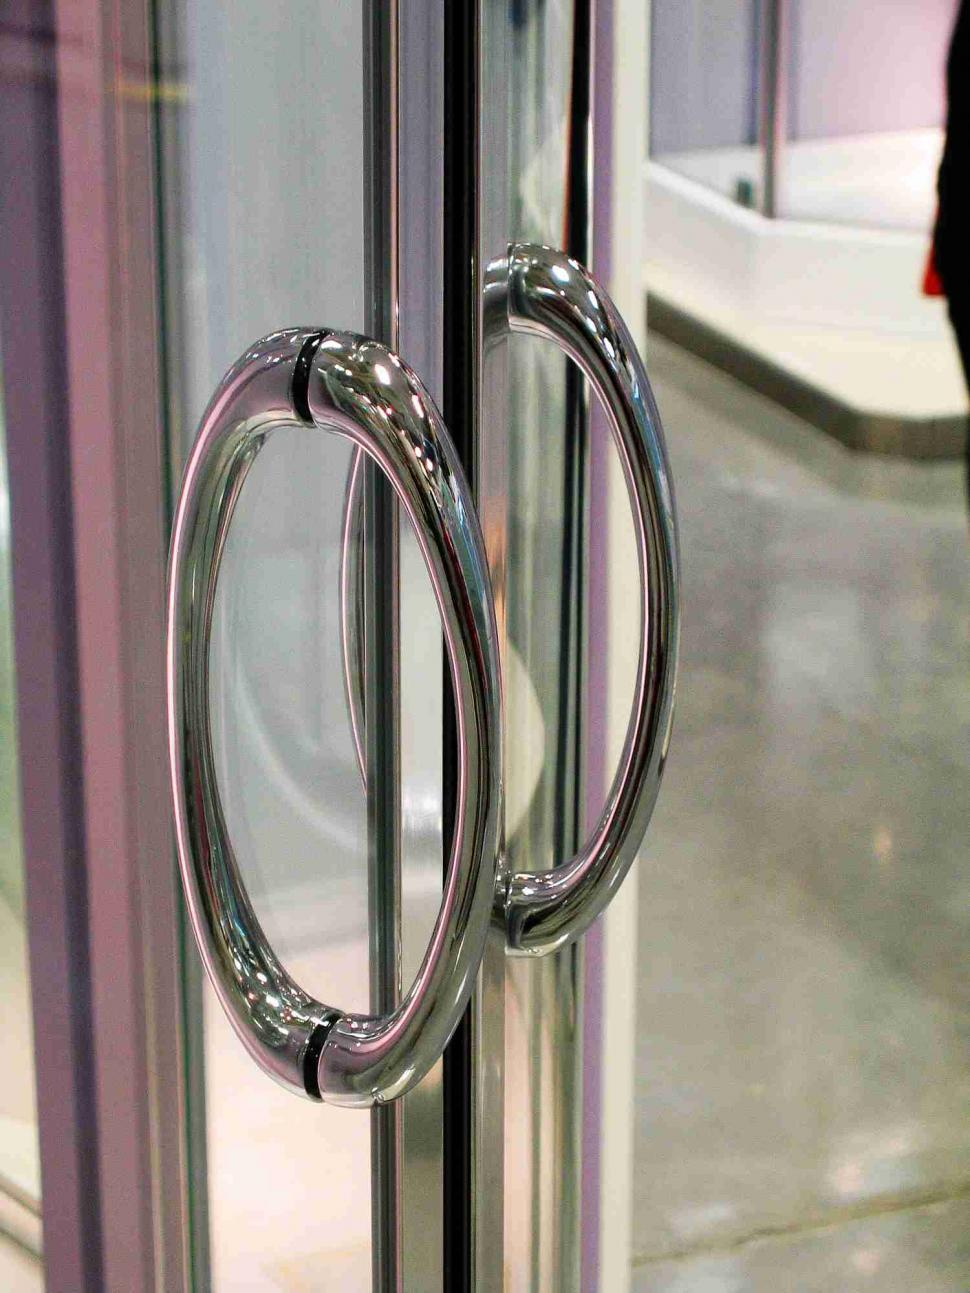 Download Free Stock HD Photo of Handle of showcase door Online